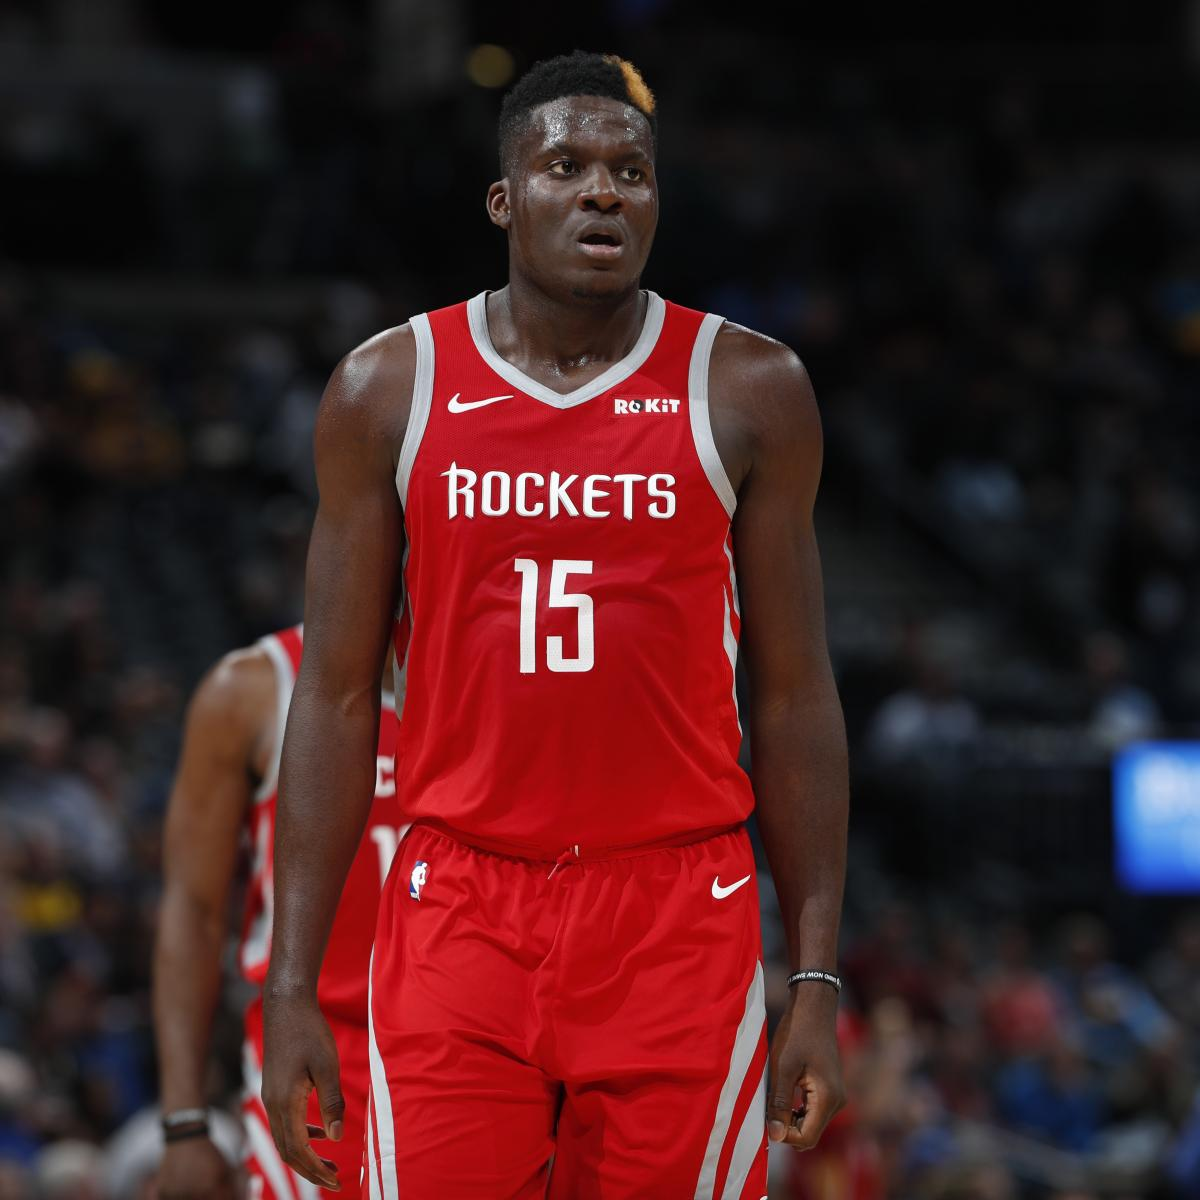 Report: Clint Capela Traded to Hawks in 4-Team Blockbuster